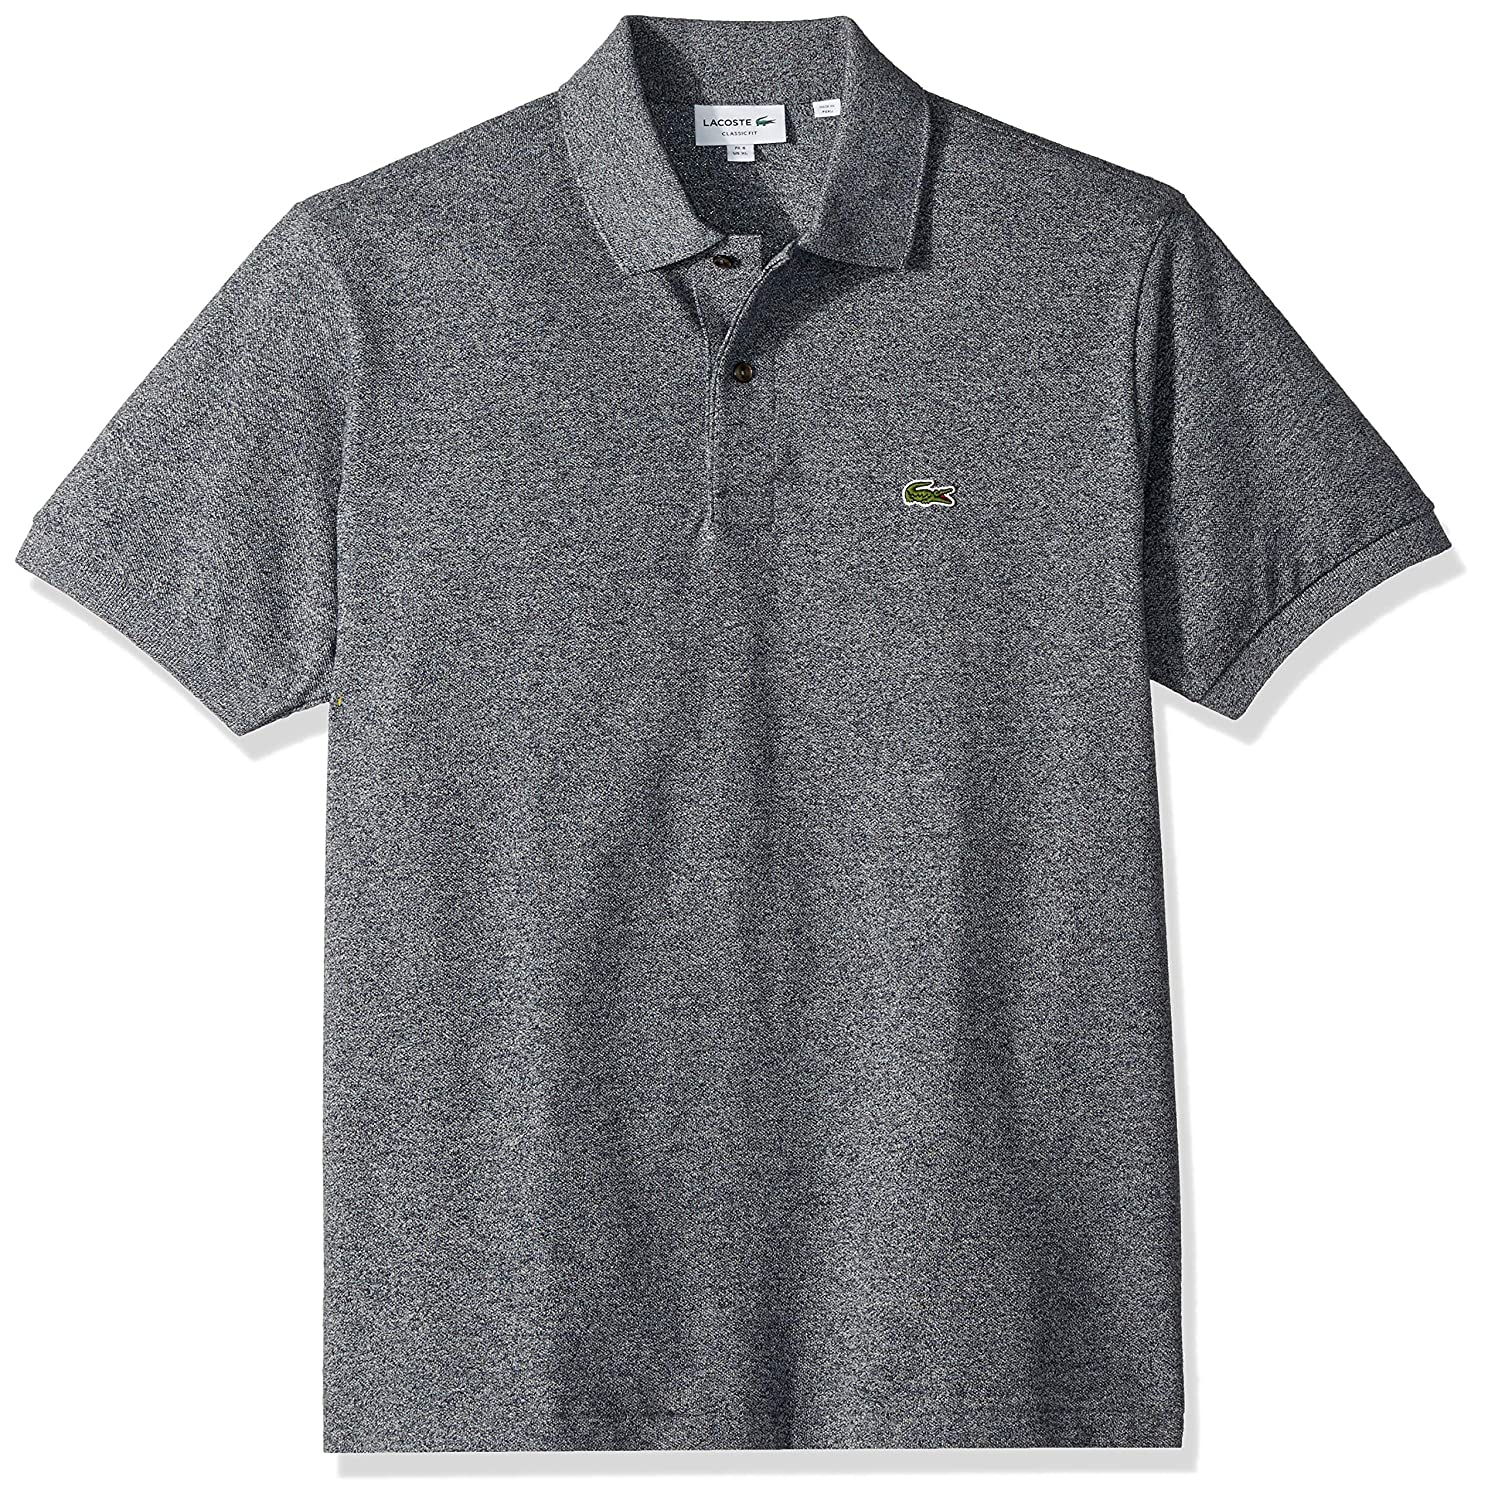 659f7f6e Lacoste Men's Classic Short Sleeve Chine Pique Polo Shirt at Amazon Men's  Clothing store: